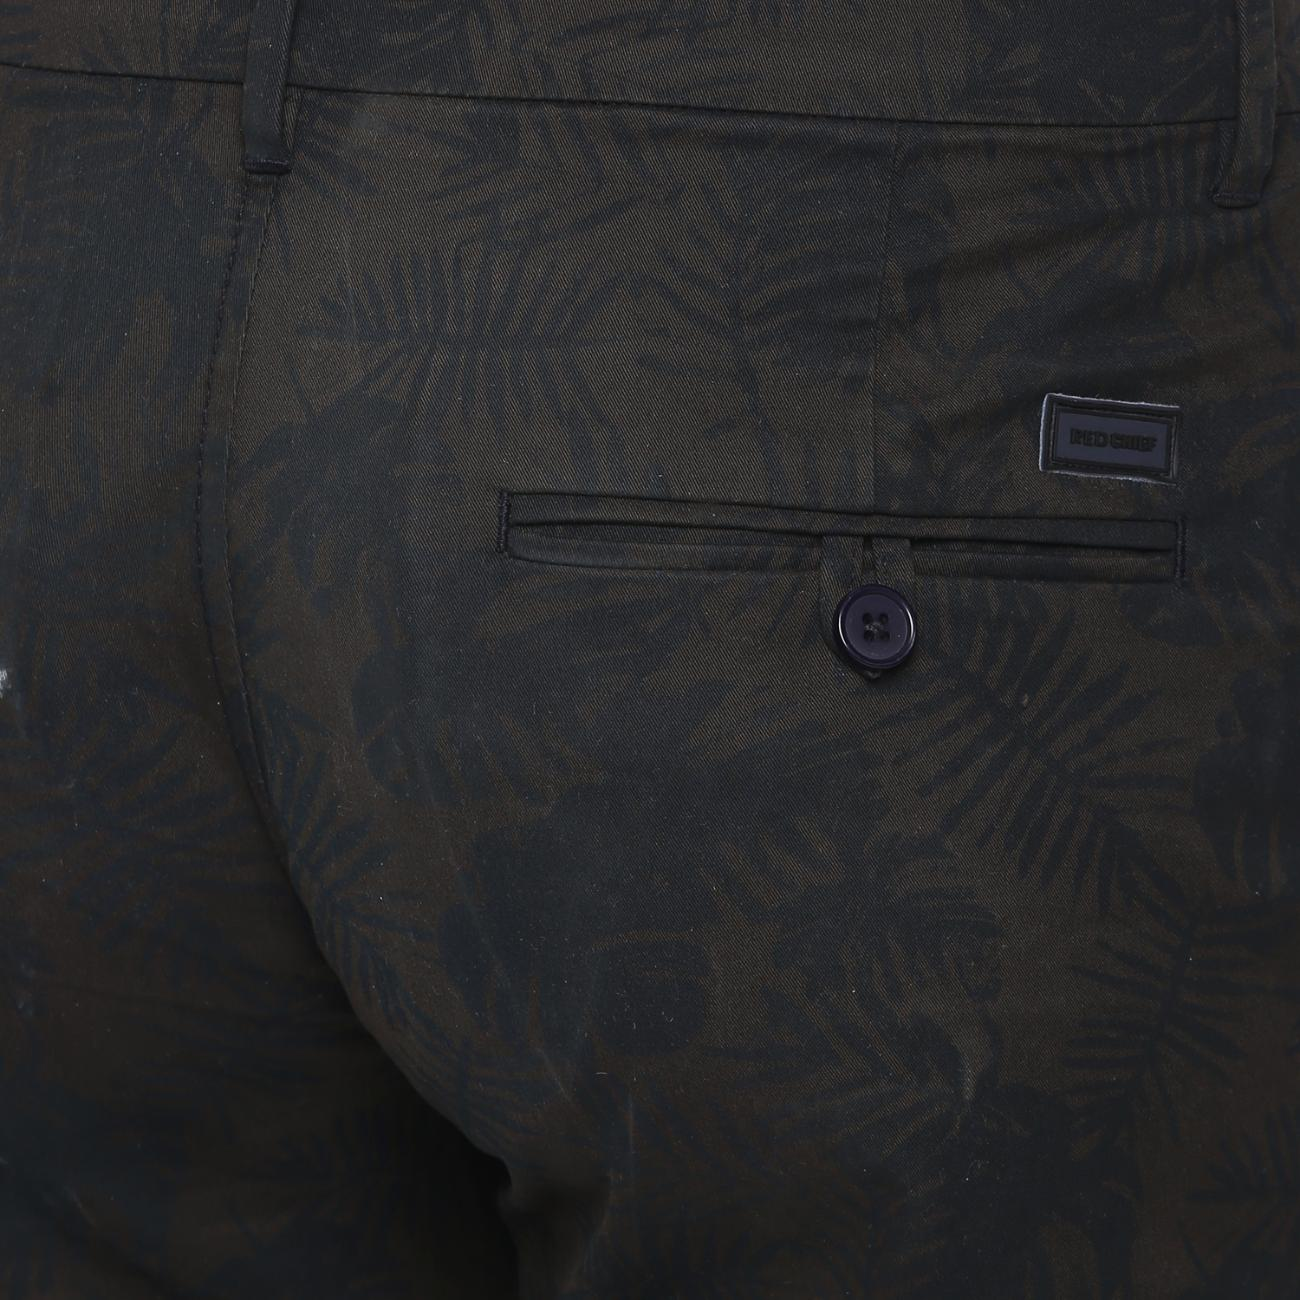 Buy Online Olive/Black Trouser at Red Chief